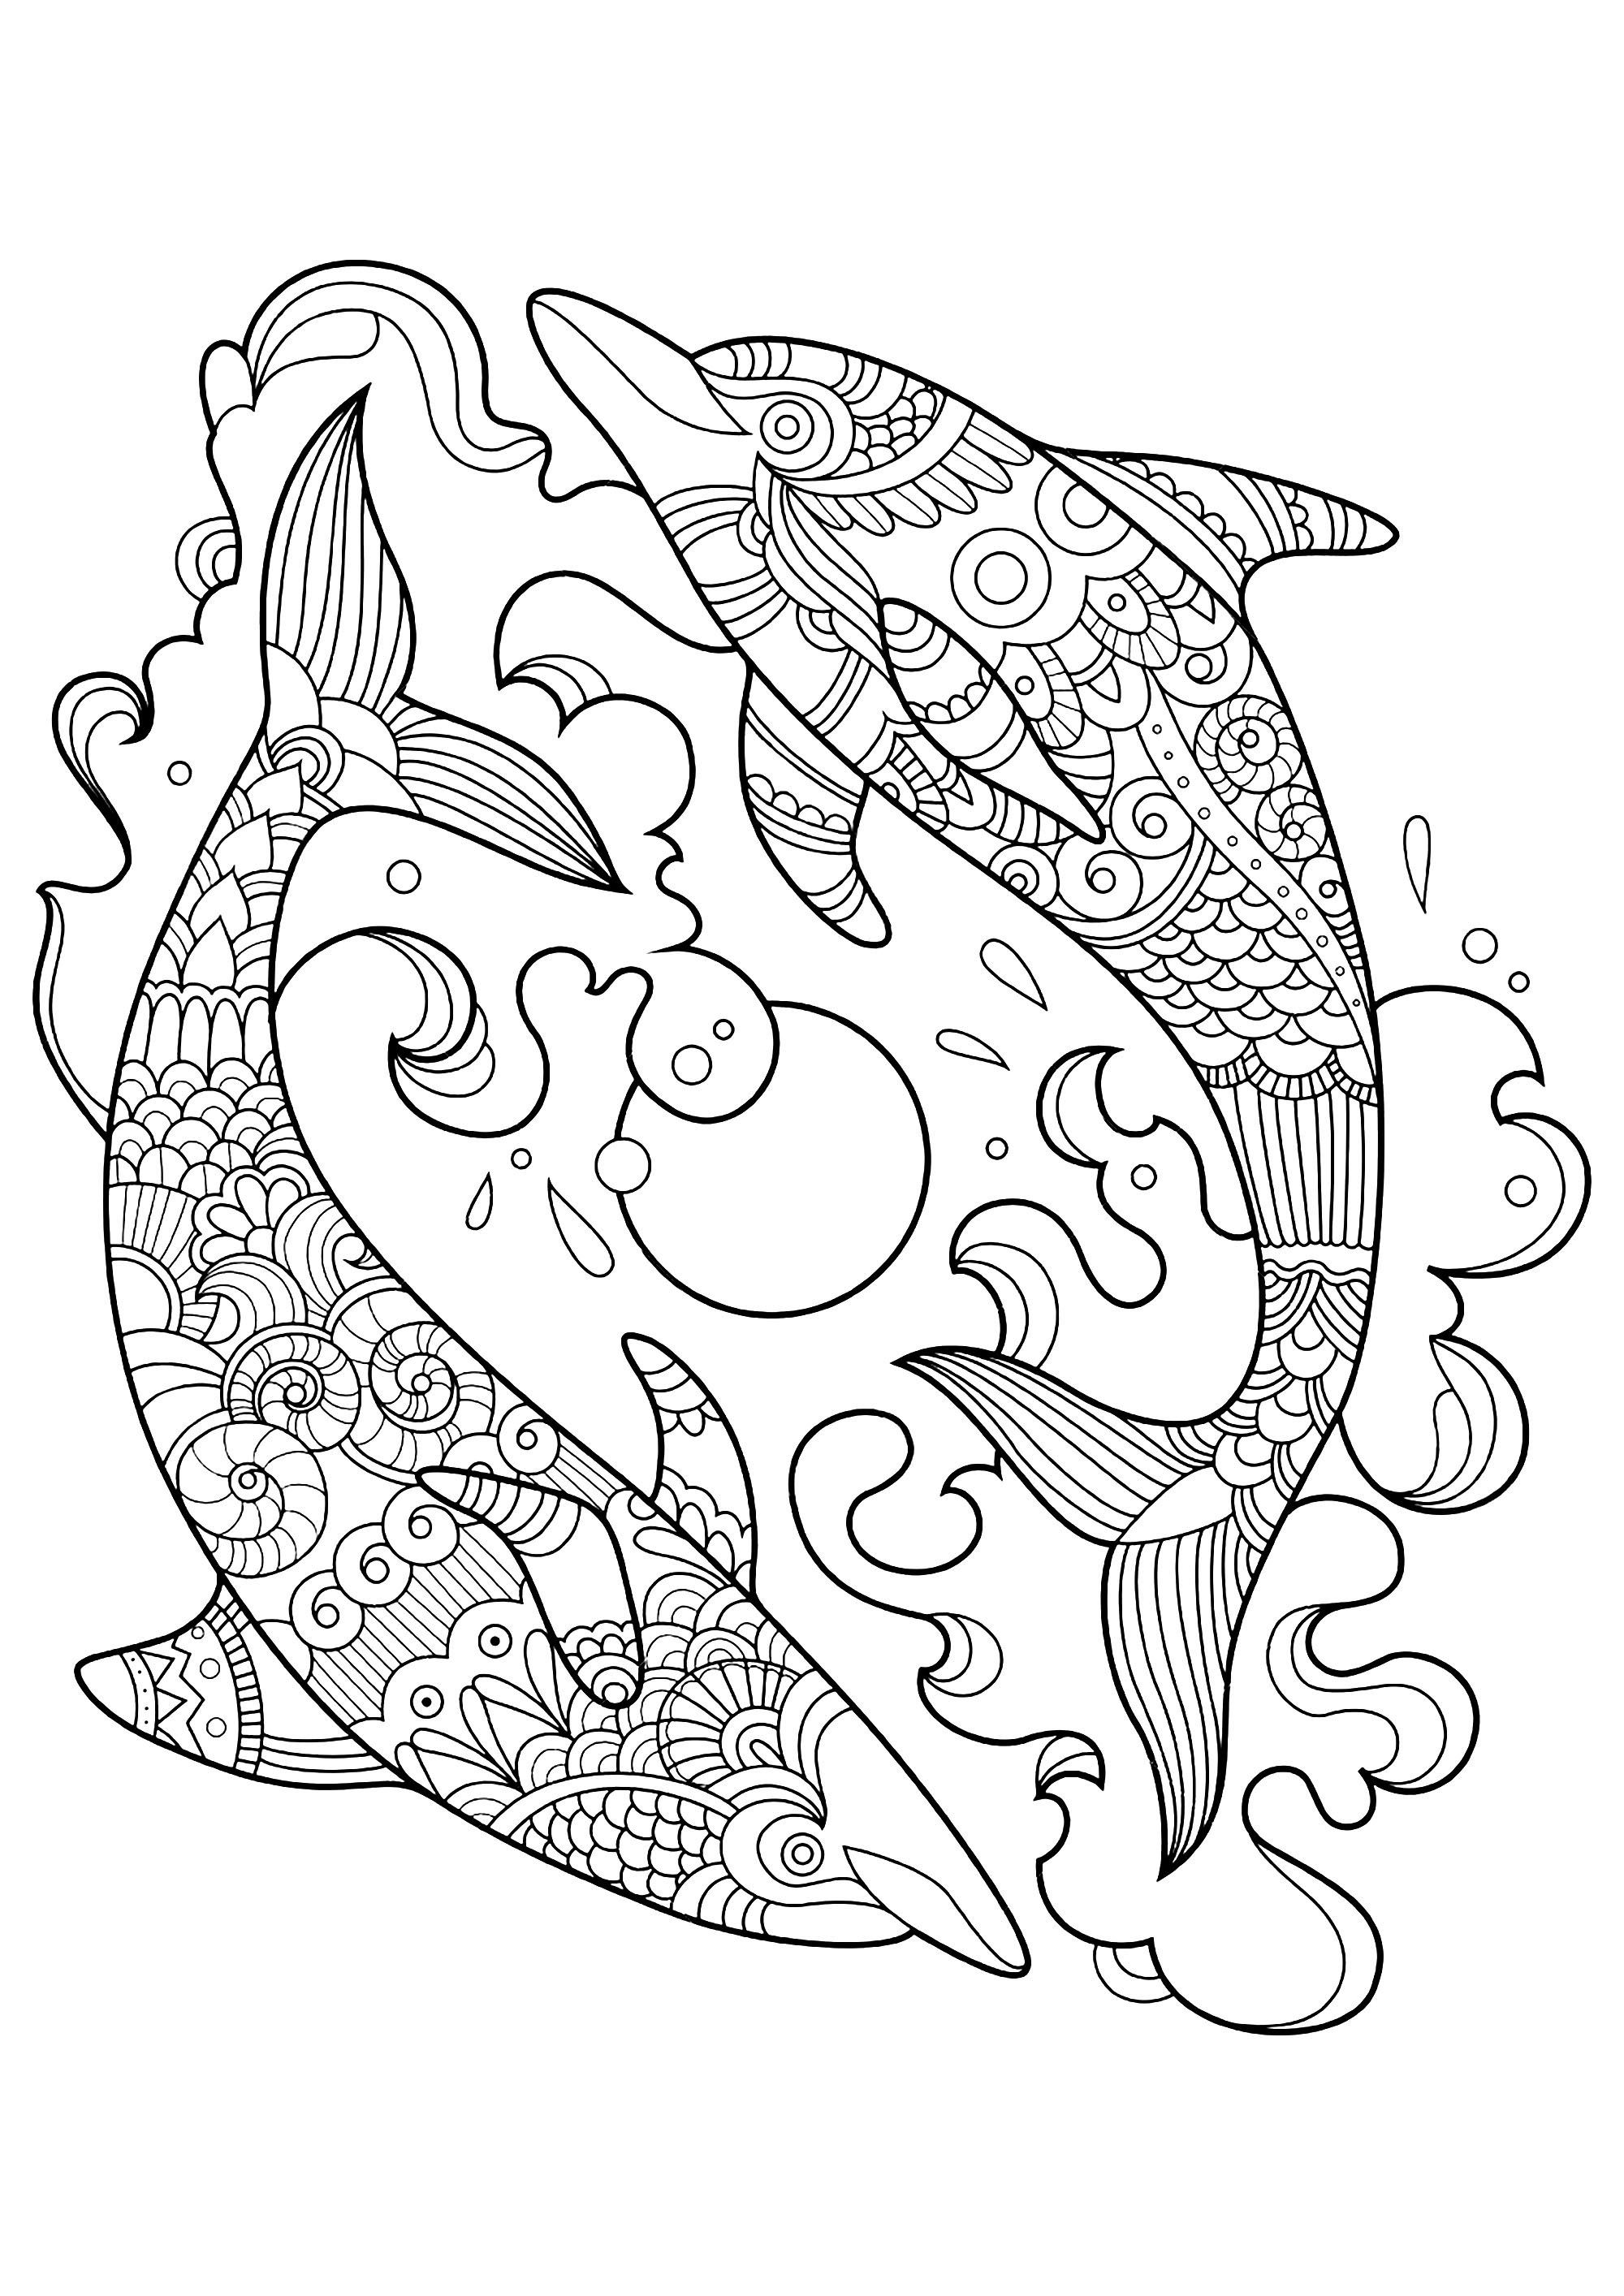 Dolphins To Color For Children Funny Dolphins Coloring Page From The Gallery Dolphins Dolphin Coloring Pages Mandala Coloring Pages Animal Coloring Pages